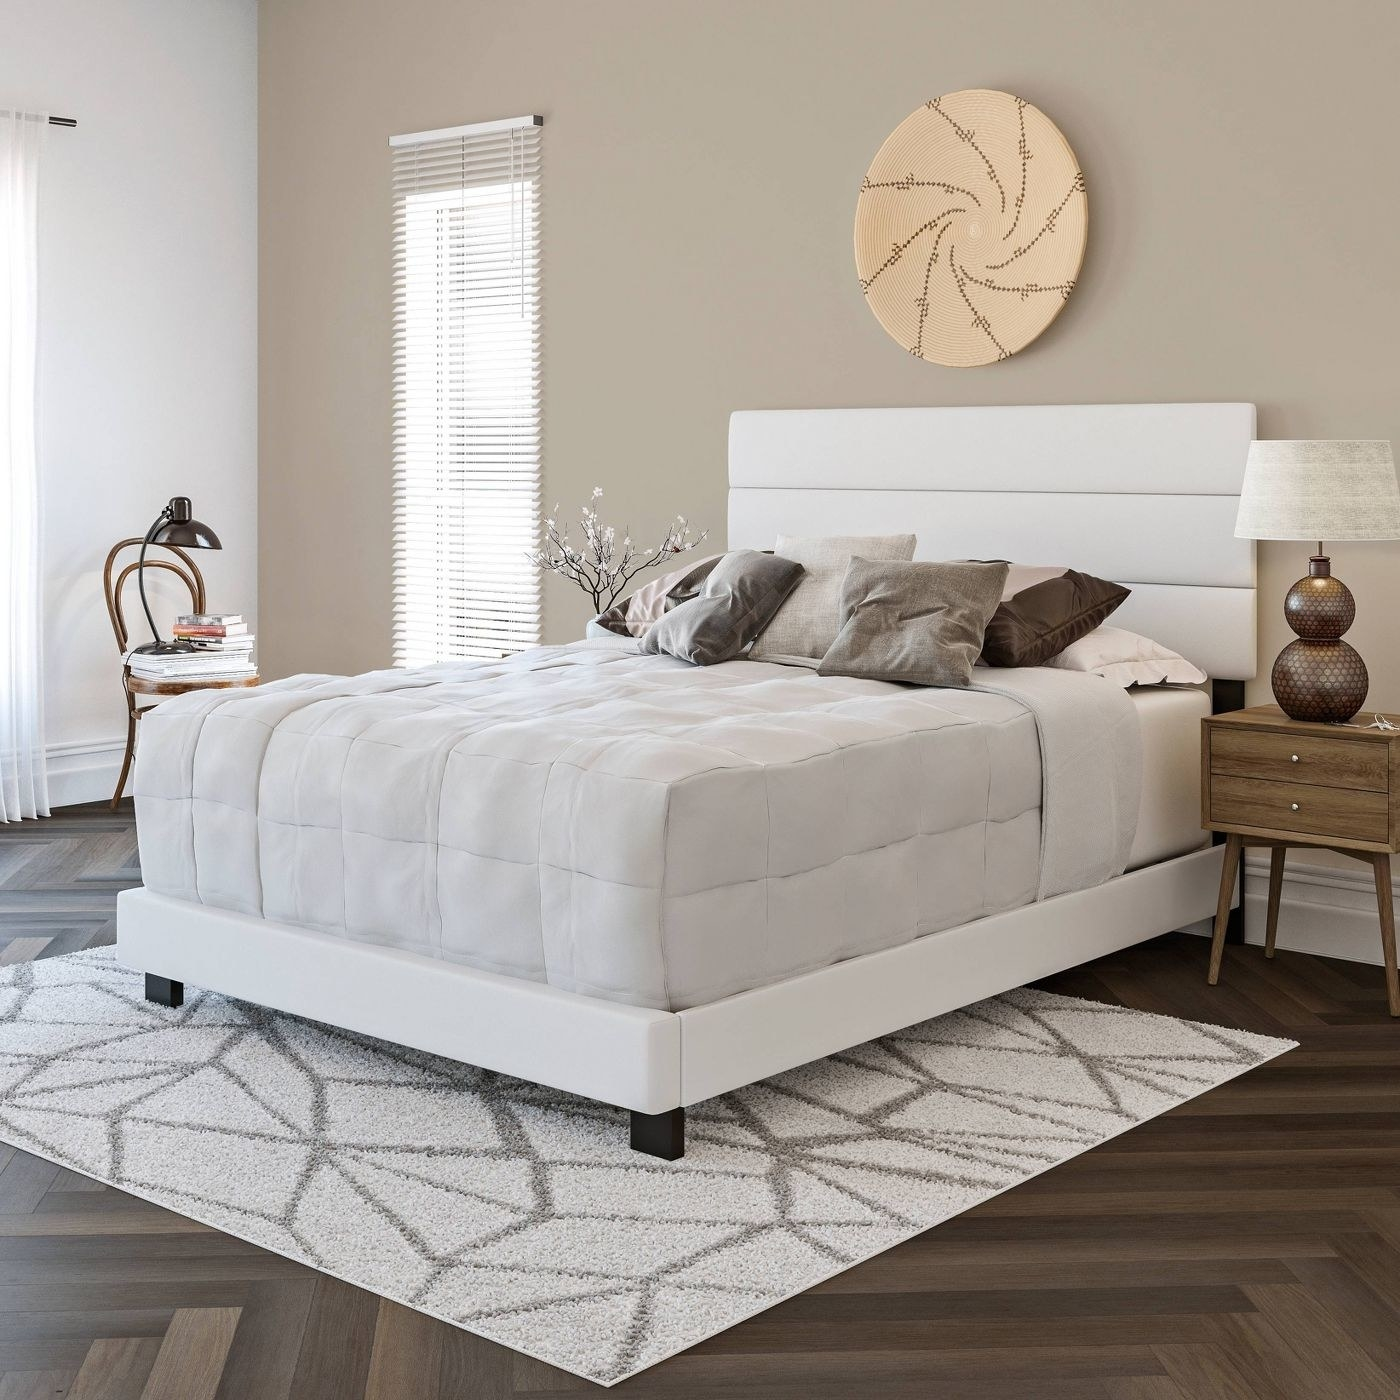 A white faux leather platform bed